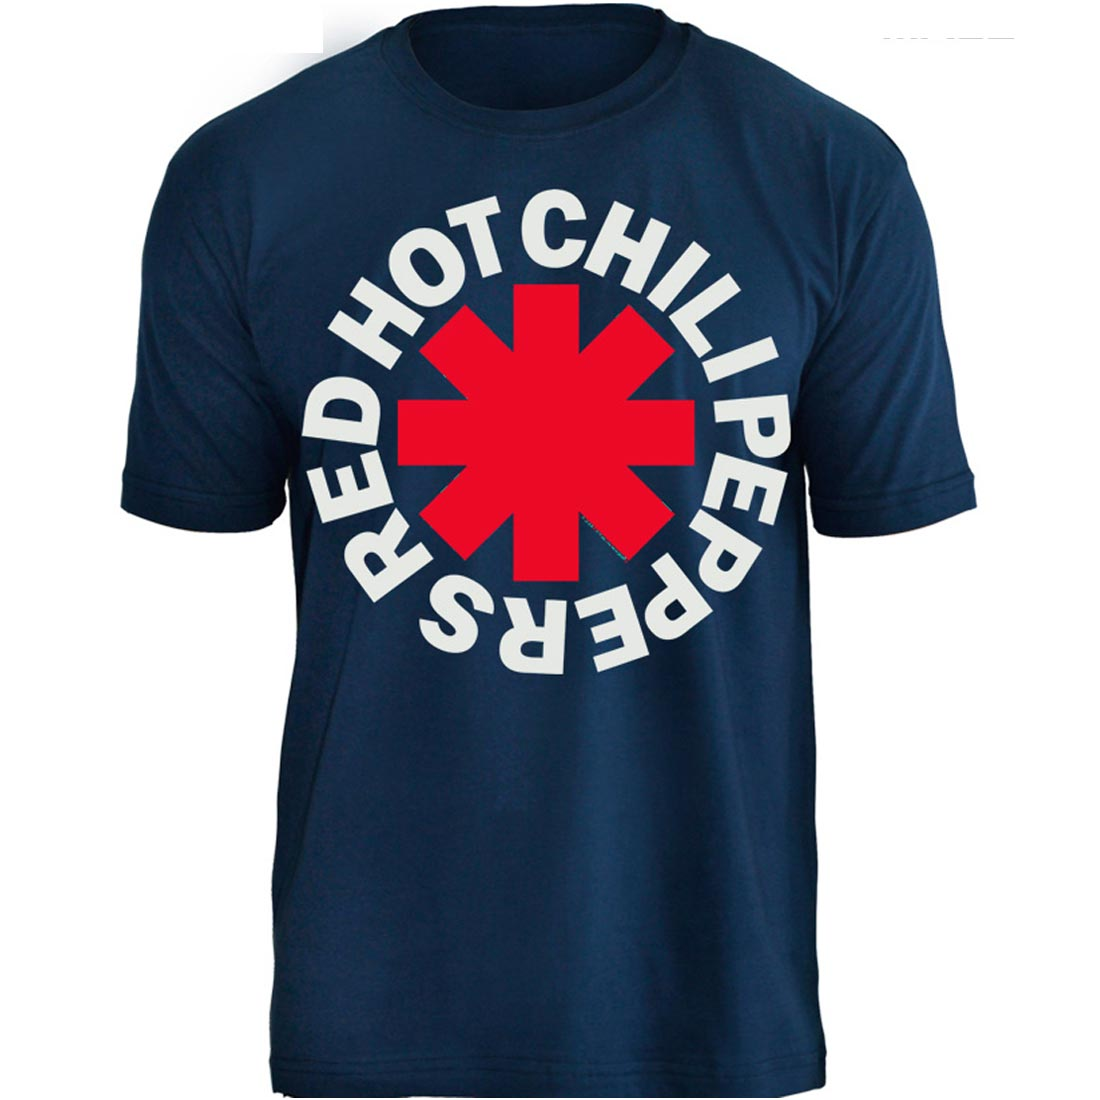 Camiseta Red Hot Chili Peppers - Azul